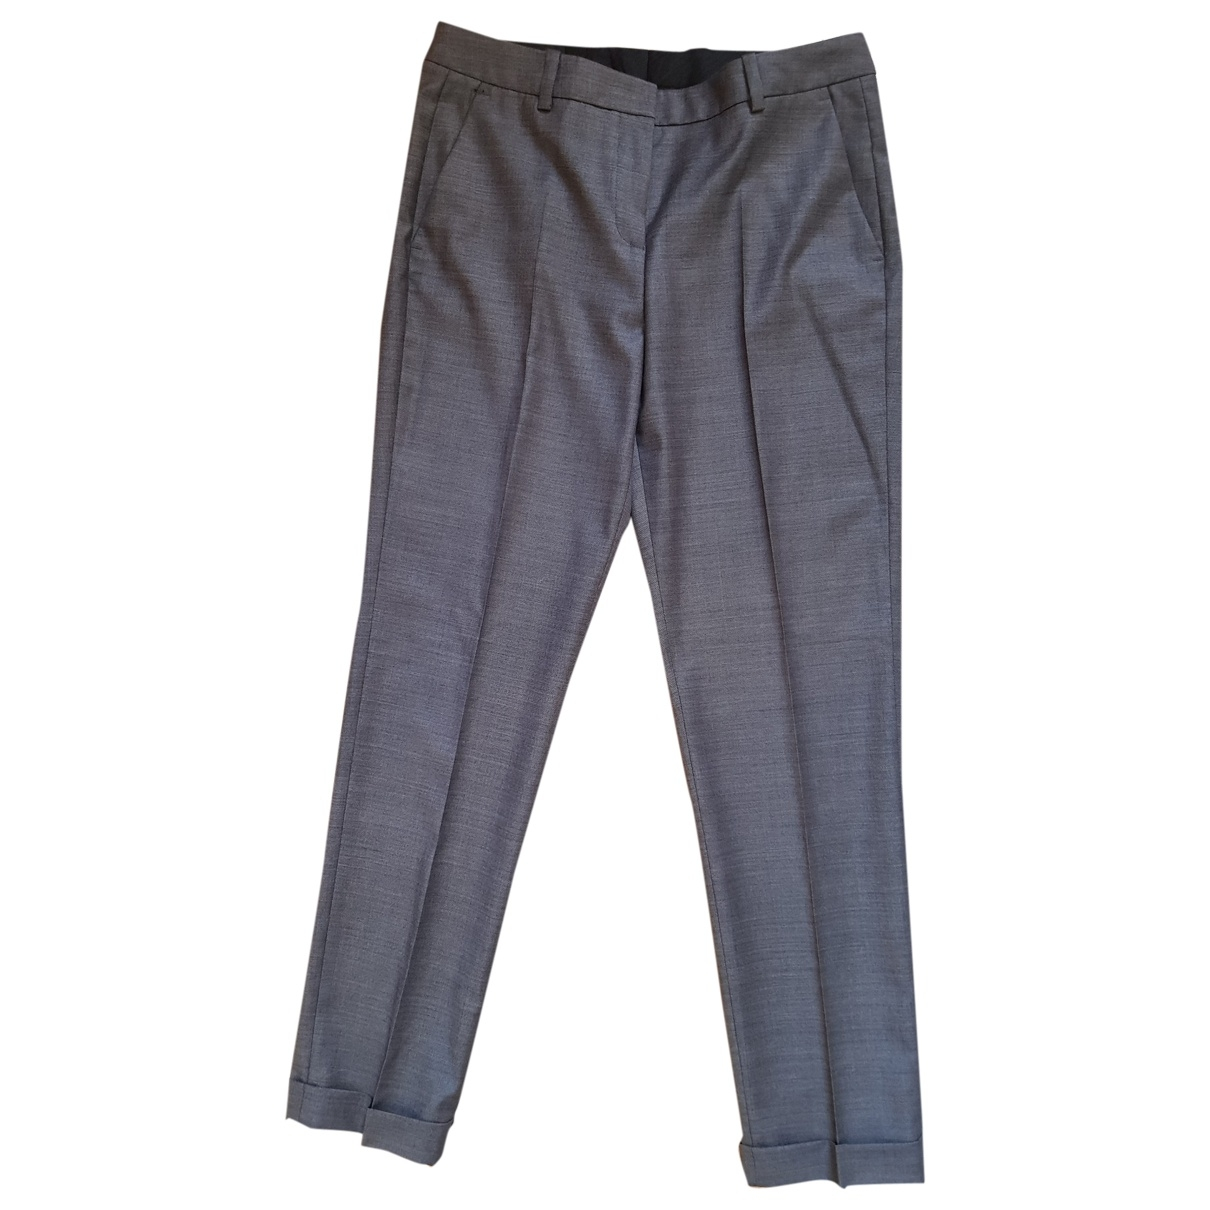 The Kooples Spring Summer 2019 Grey Wool Trousers for Women 36 FR